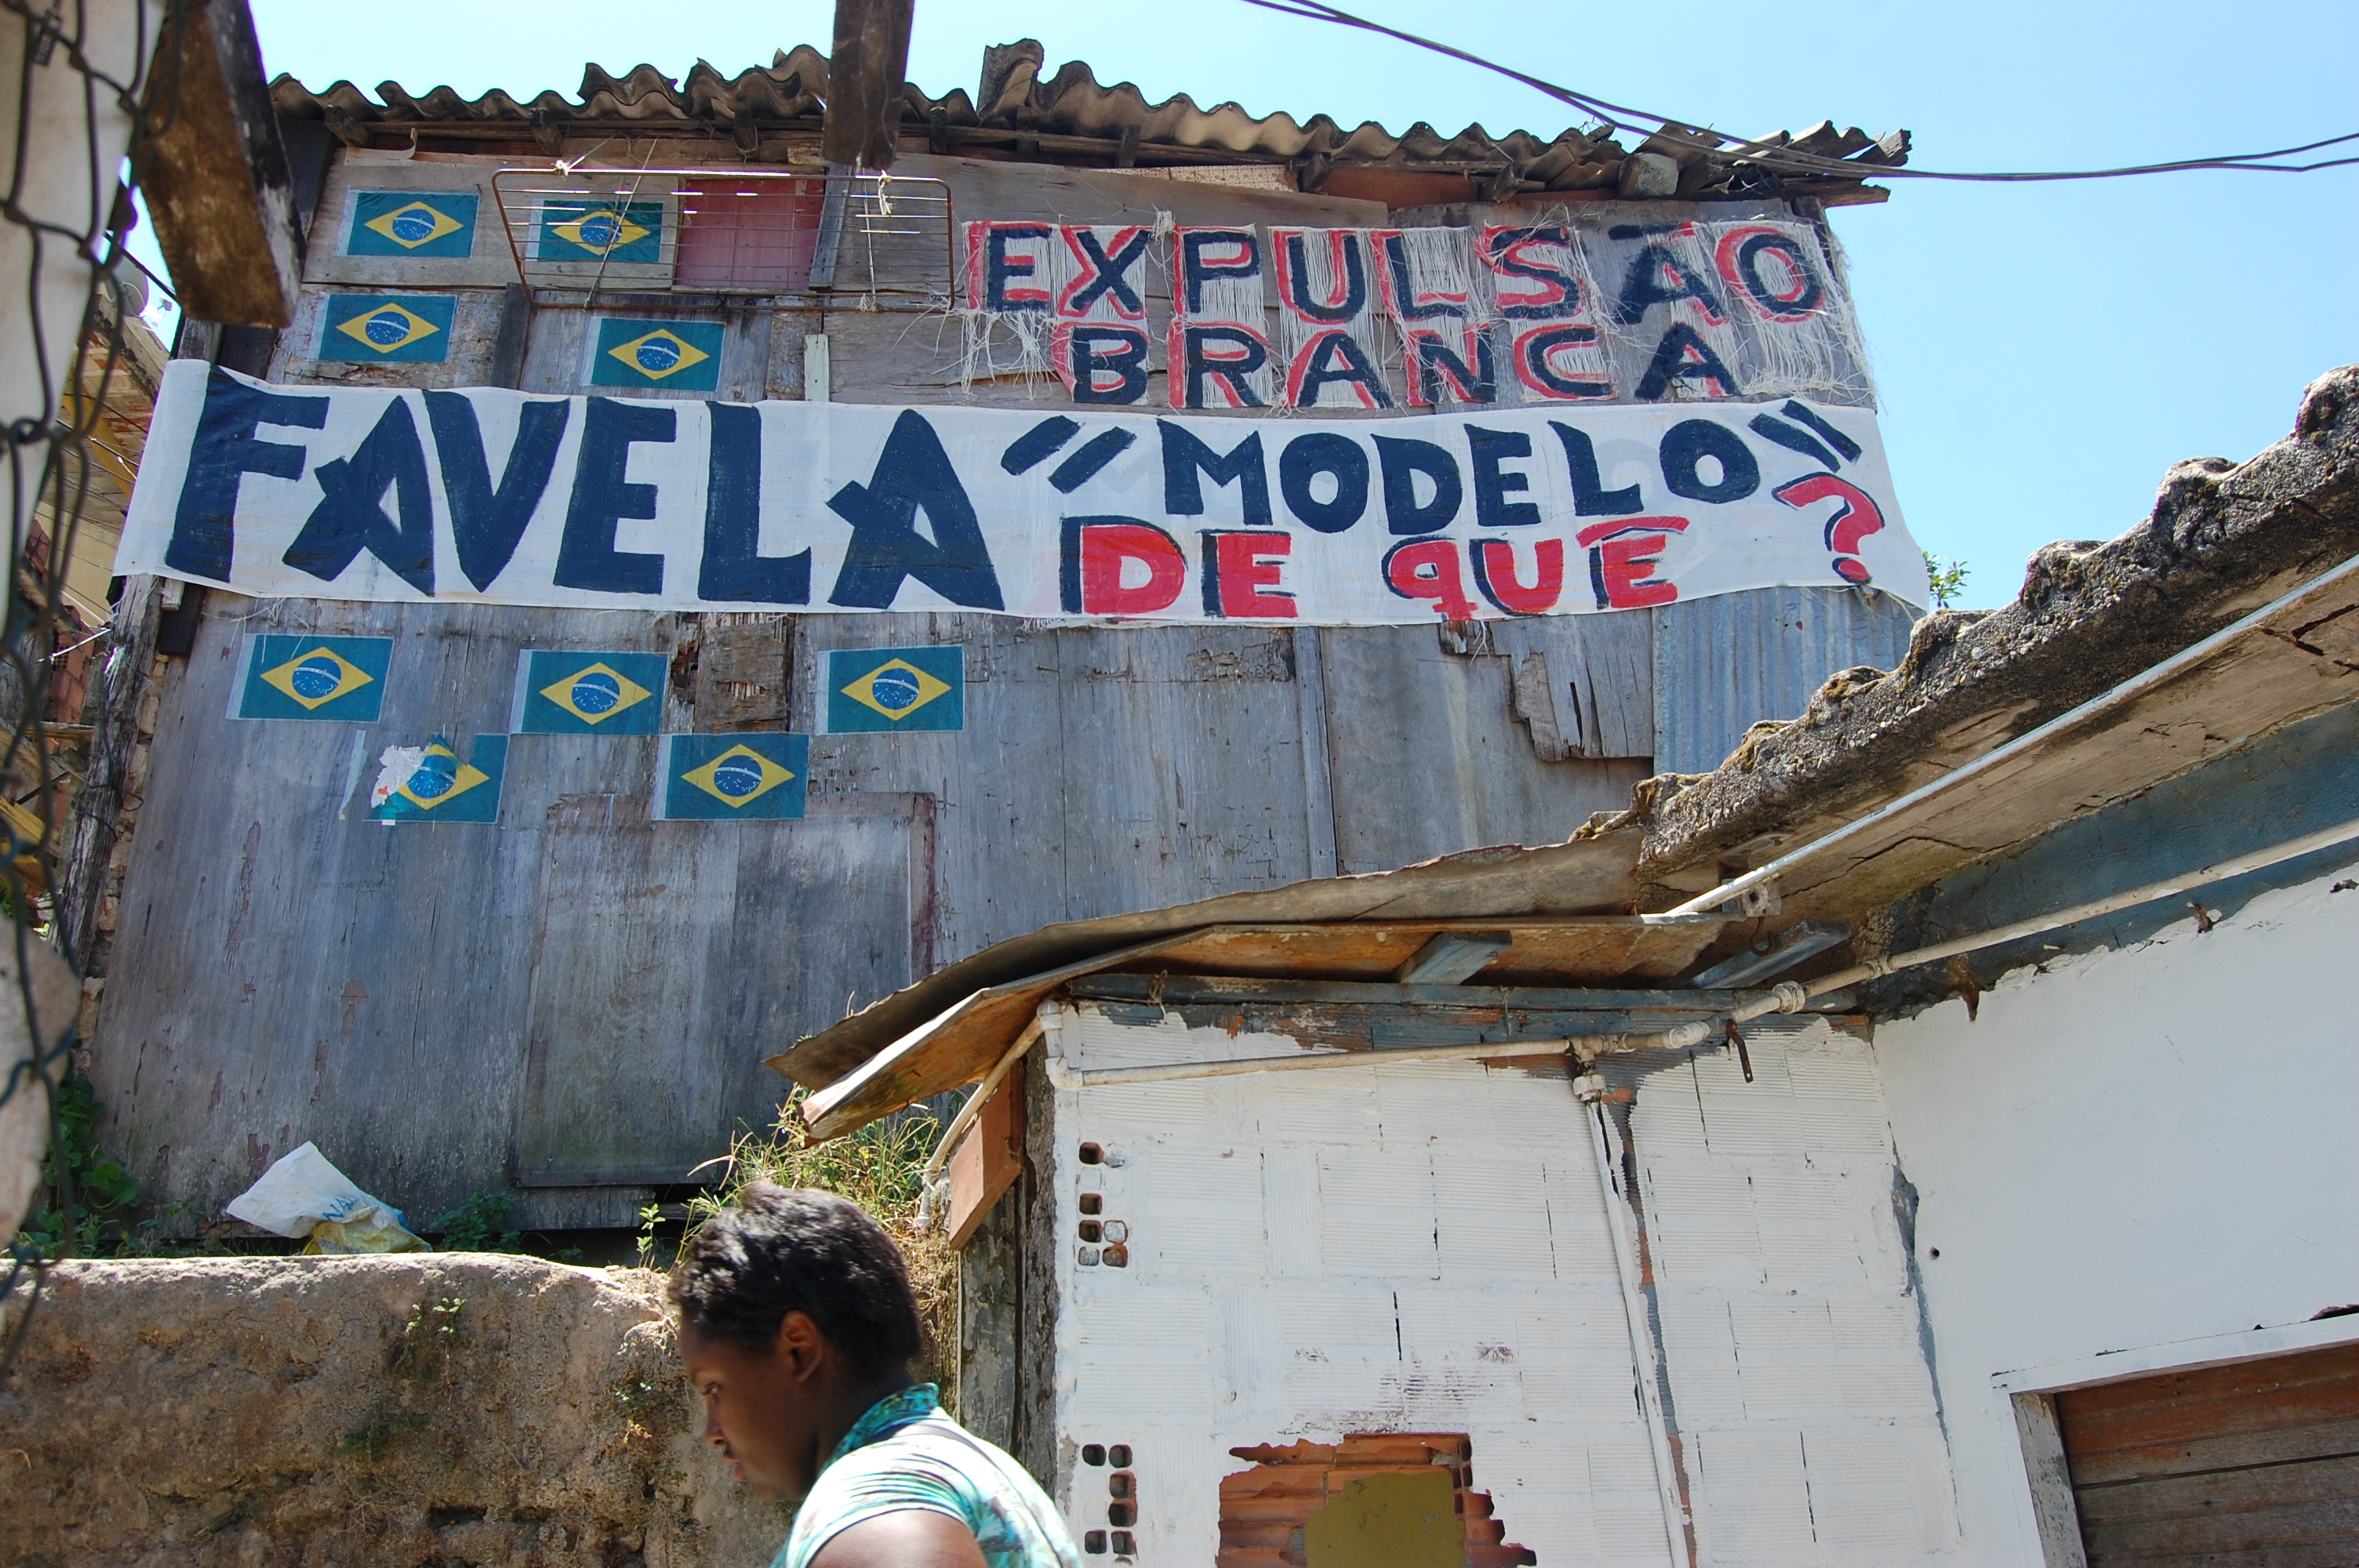 Make model favela house